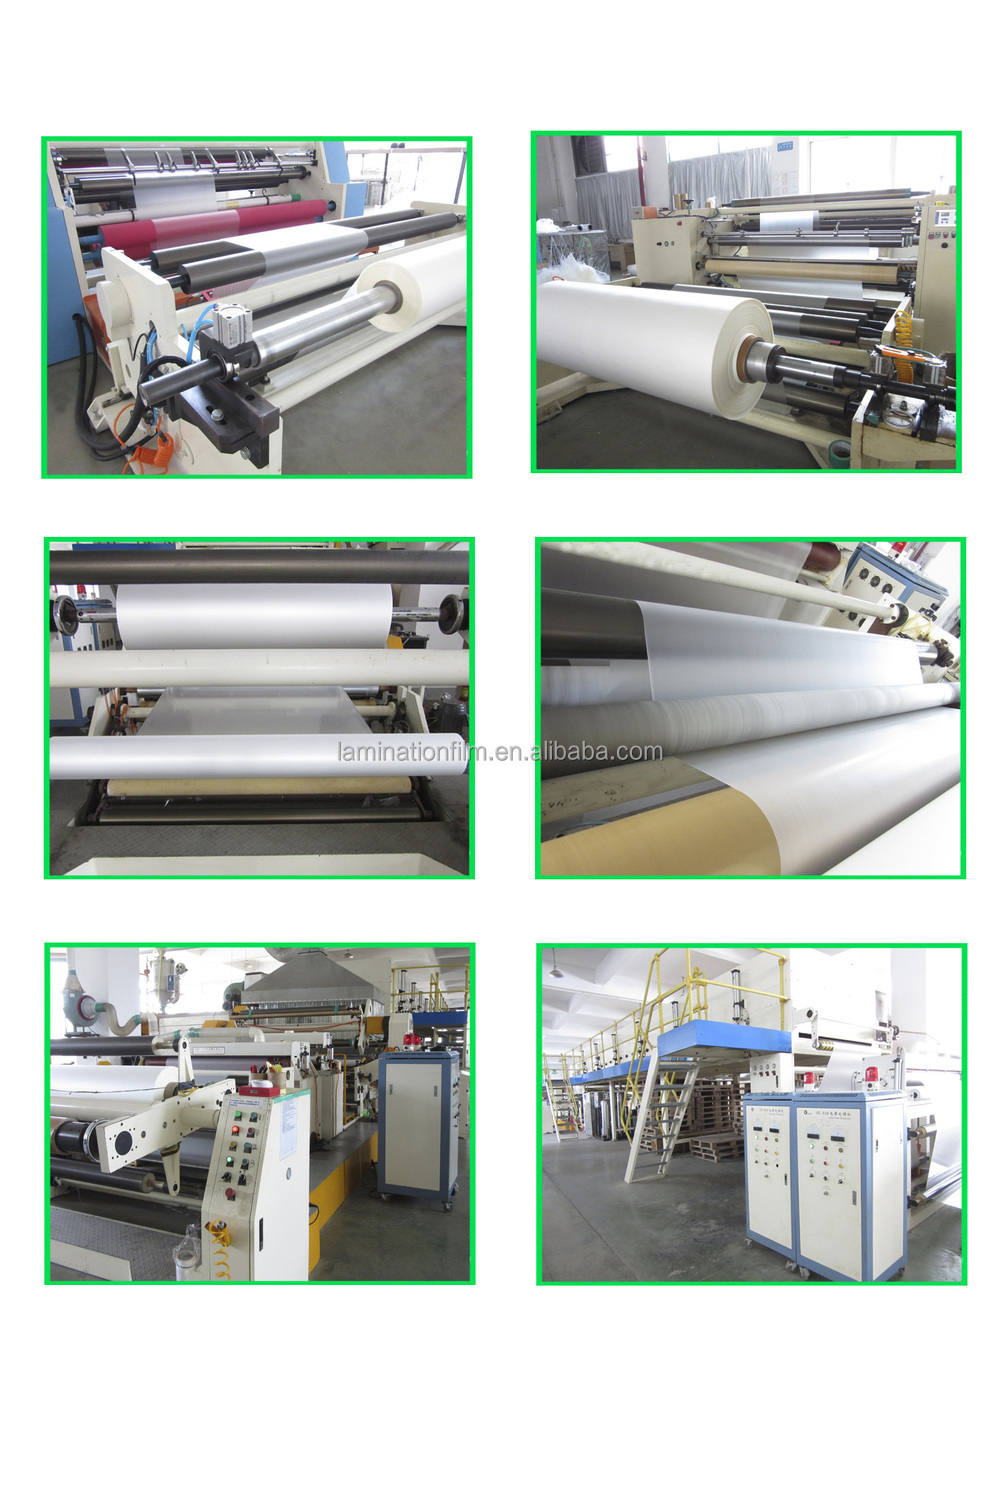 Plastic Laser Laminating Roll Films / Hologram Base Material Glue for Hot Stamping Foil